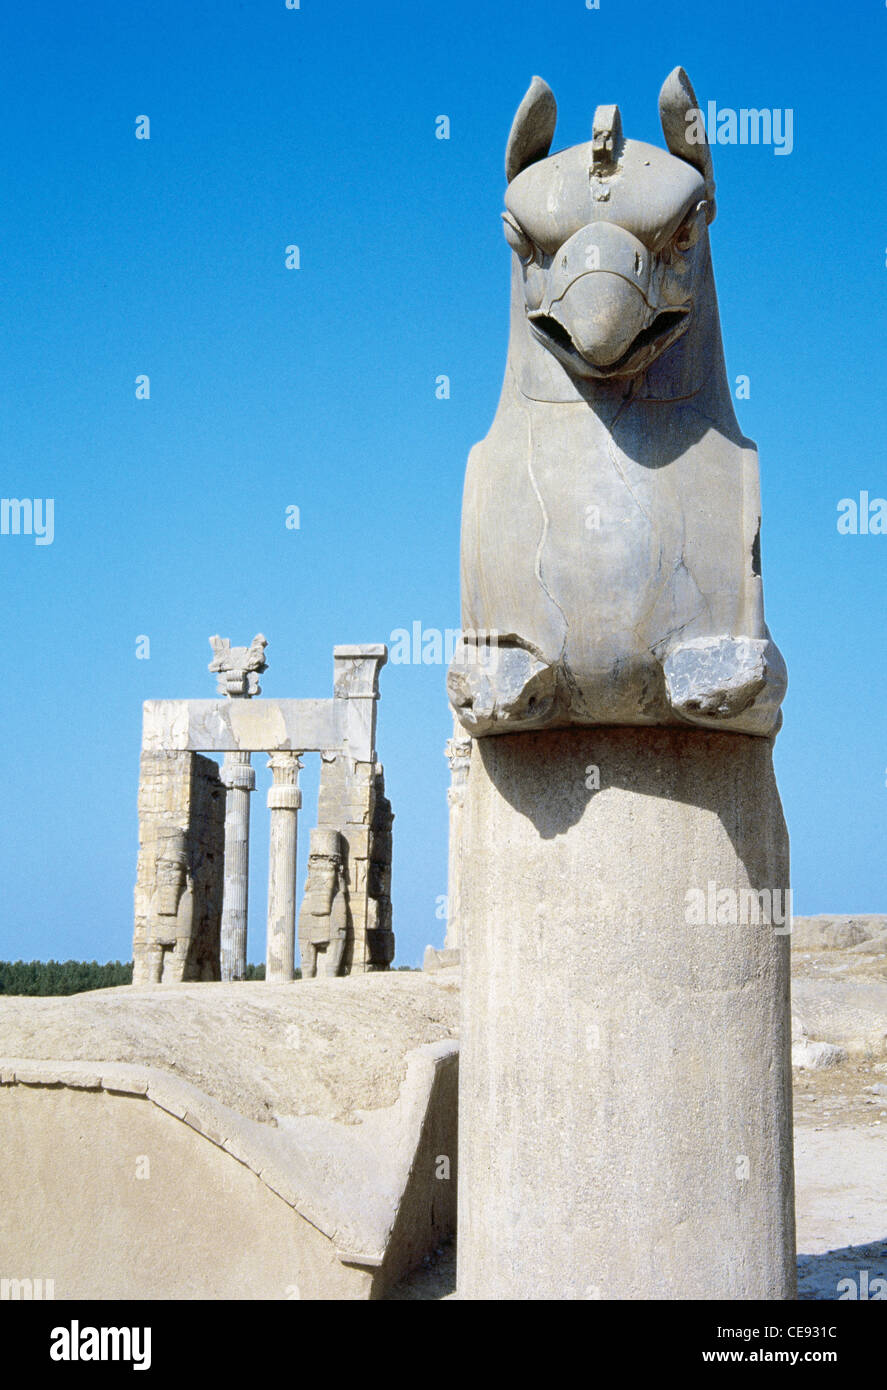 Griffin Capital Persepolis Iran High Resolution Stock Photography And Images Alamy